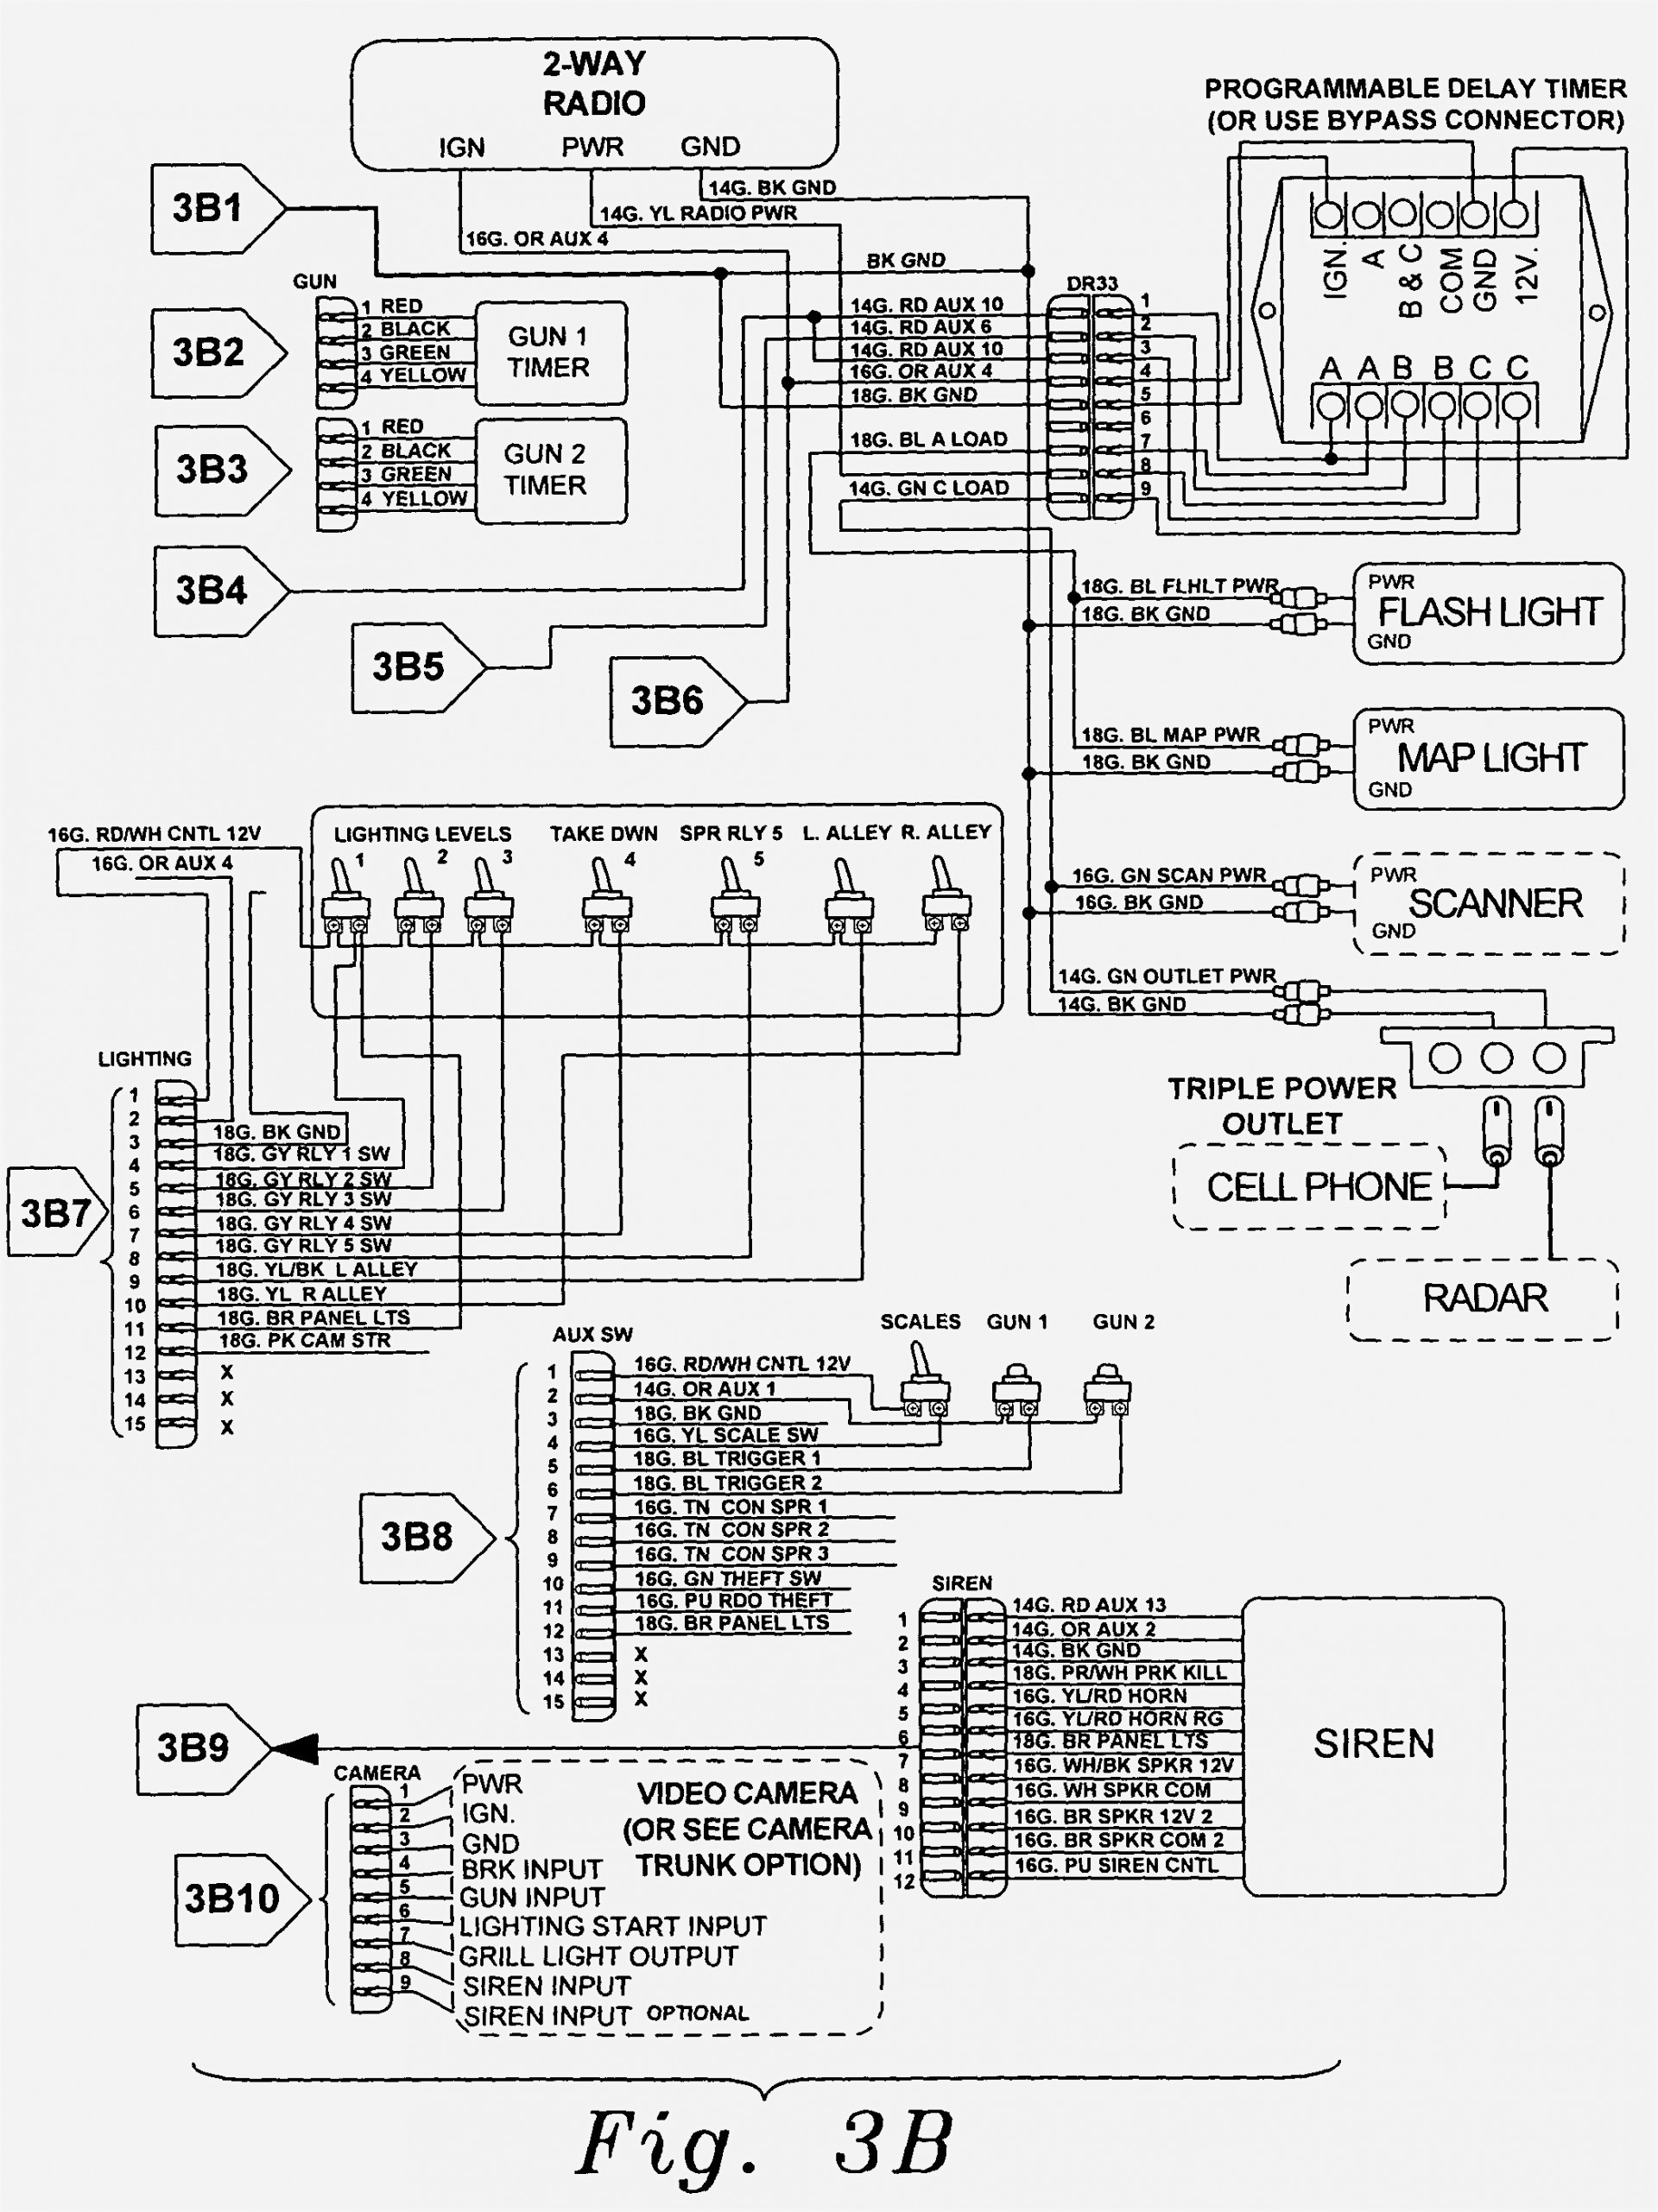 Wiring Diagram for Whelen Edge 9000 Refrence Light Bar Wiring Diagram as Well as Whelen Strobe